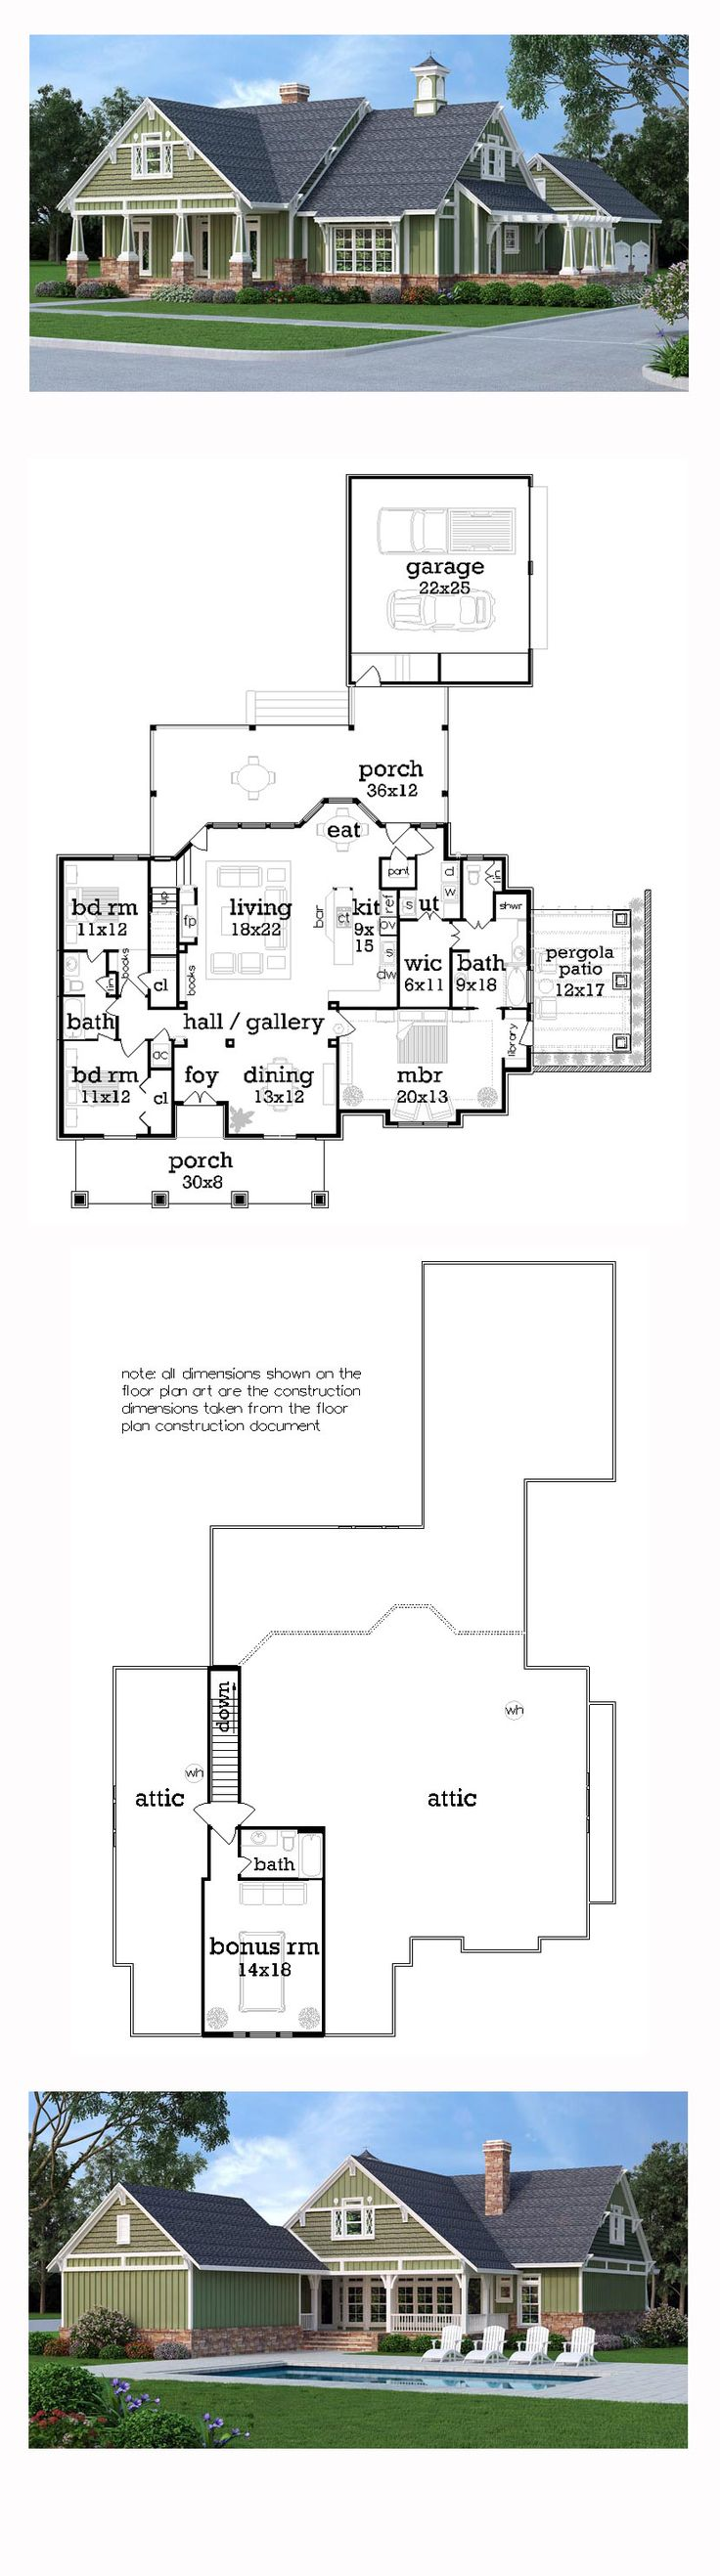 171 best house plans images on pinterest little house plans ranch